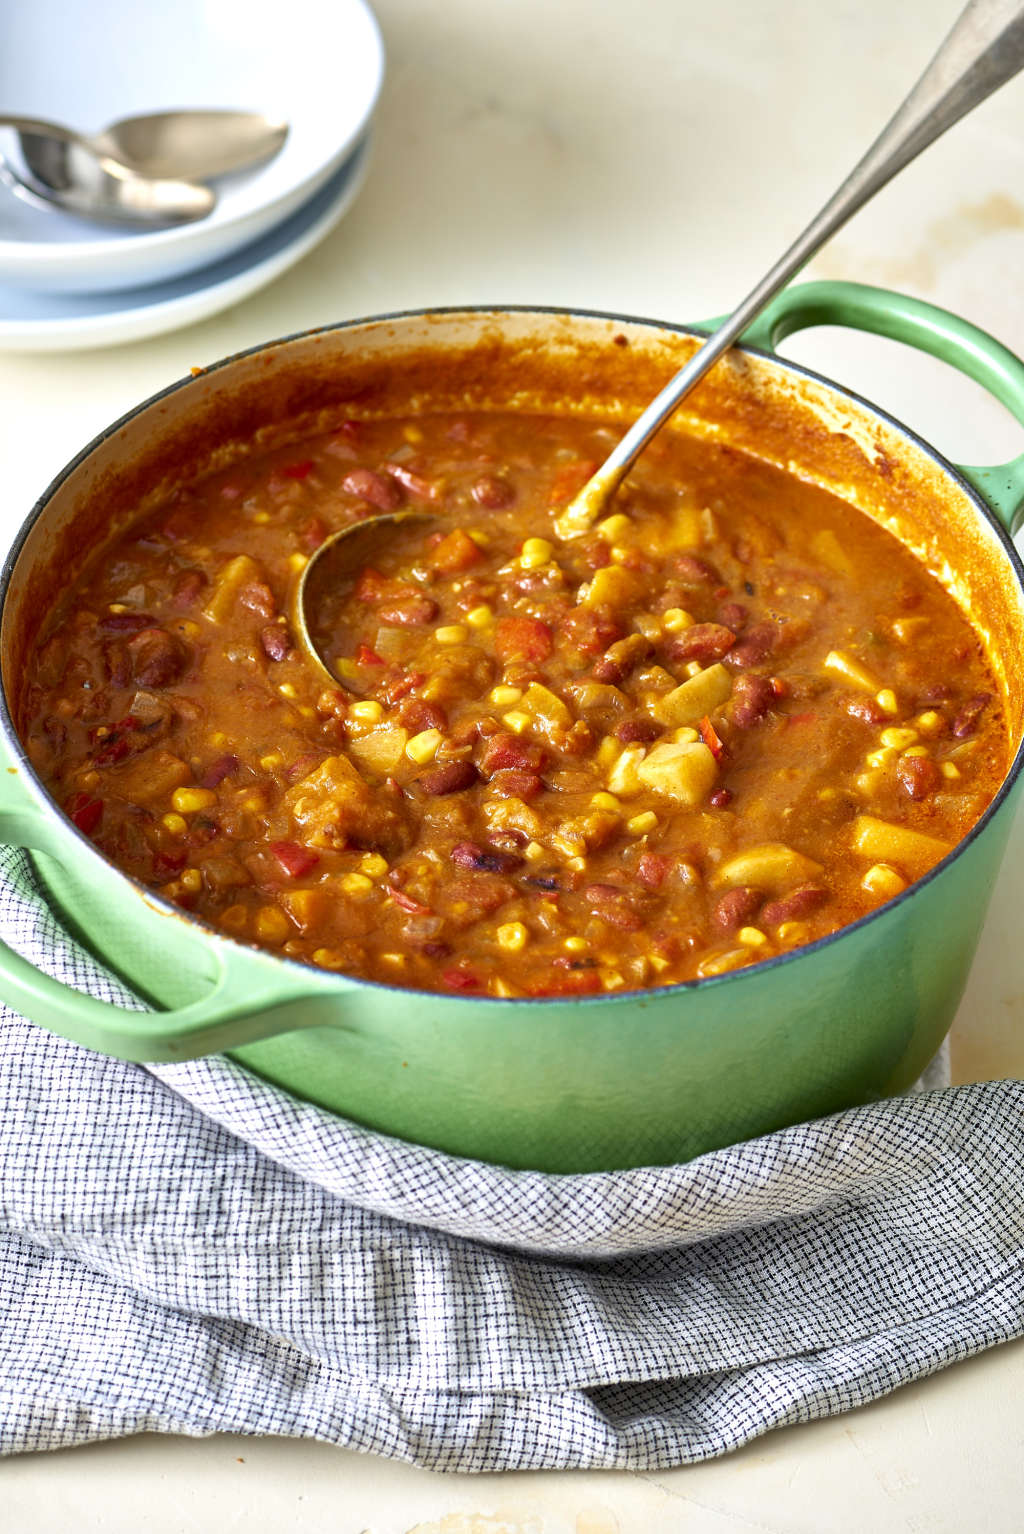 Pumpkin Chili Is Exactly What to Eat on Halloween